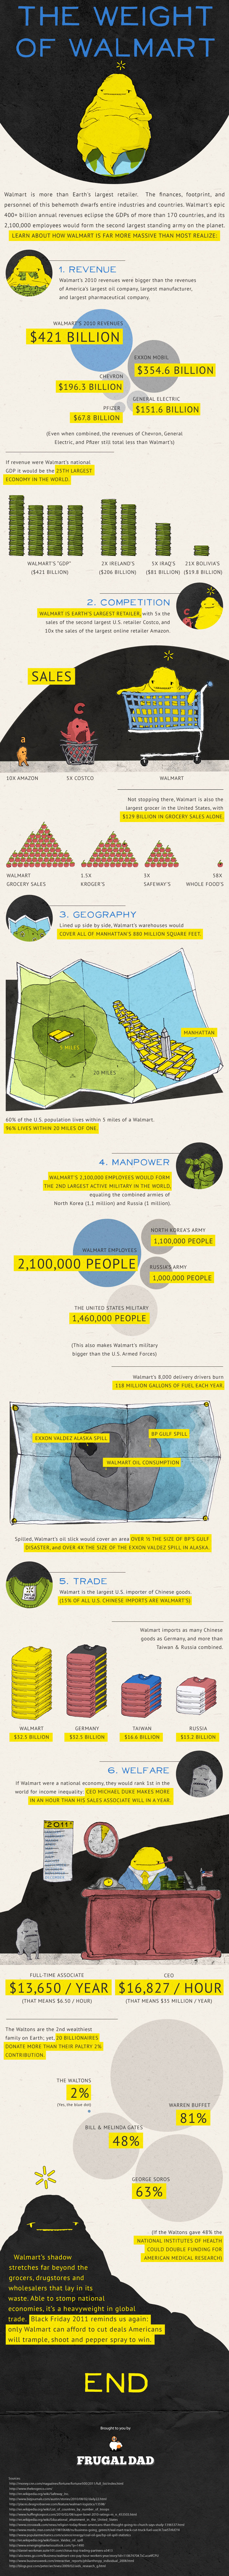 The Weight of WalMart Business Infographic